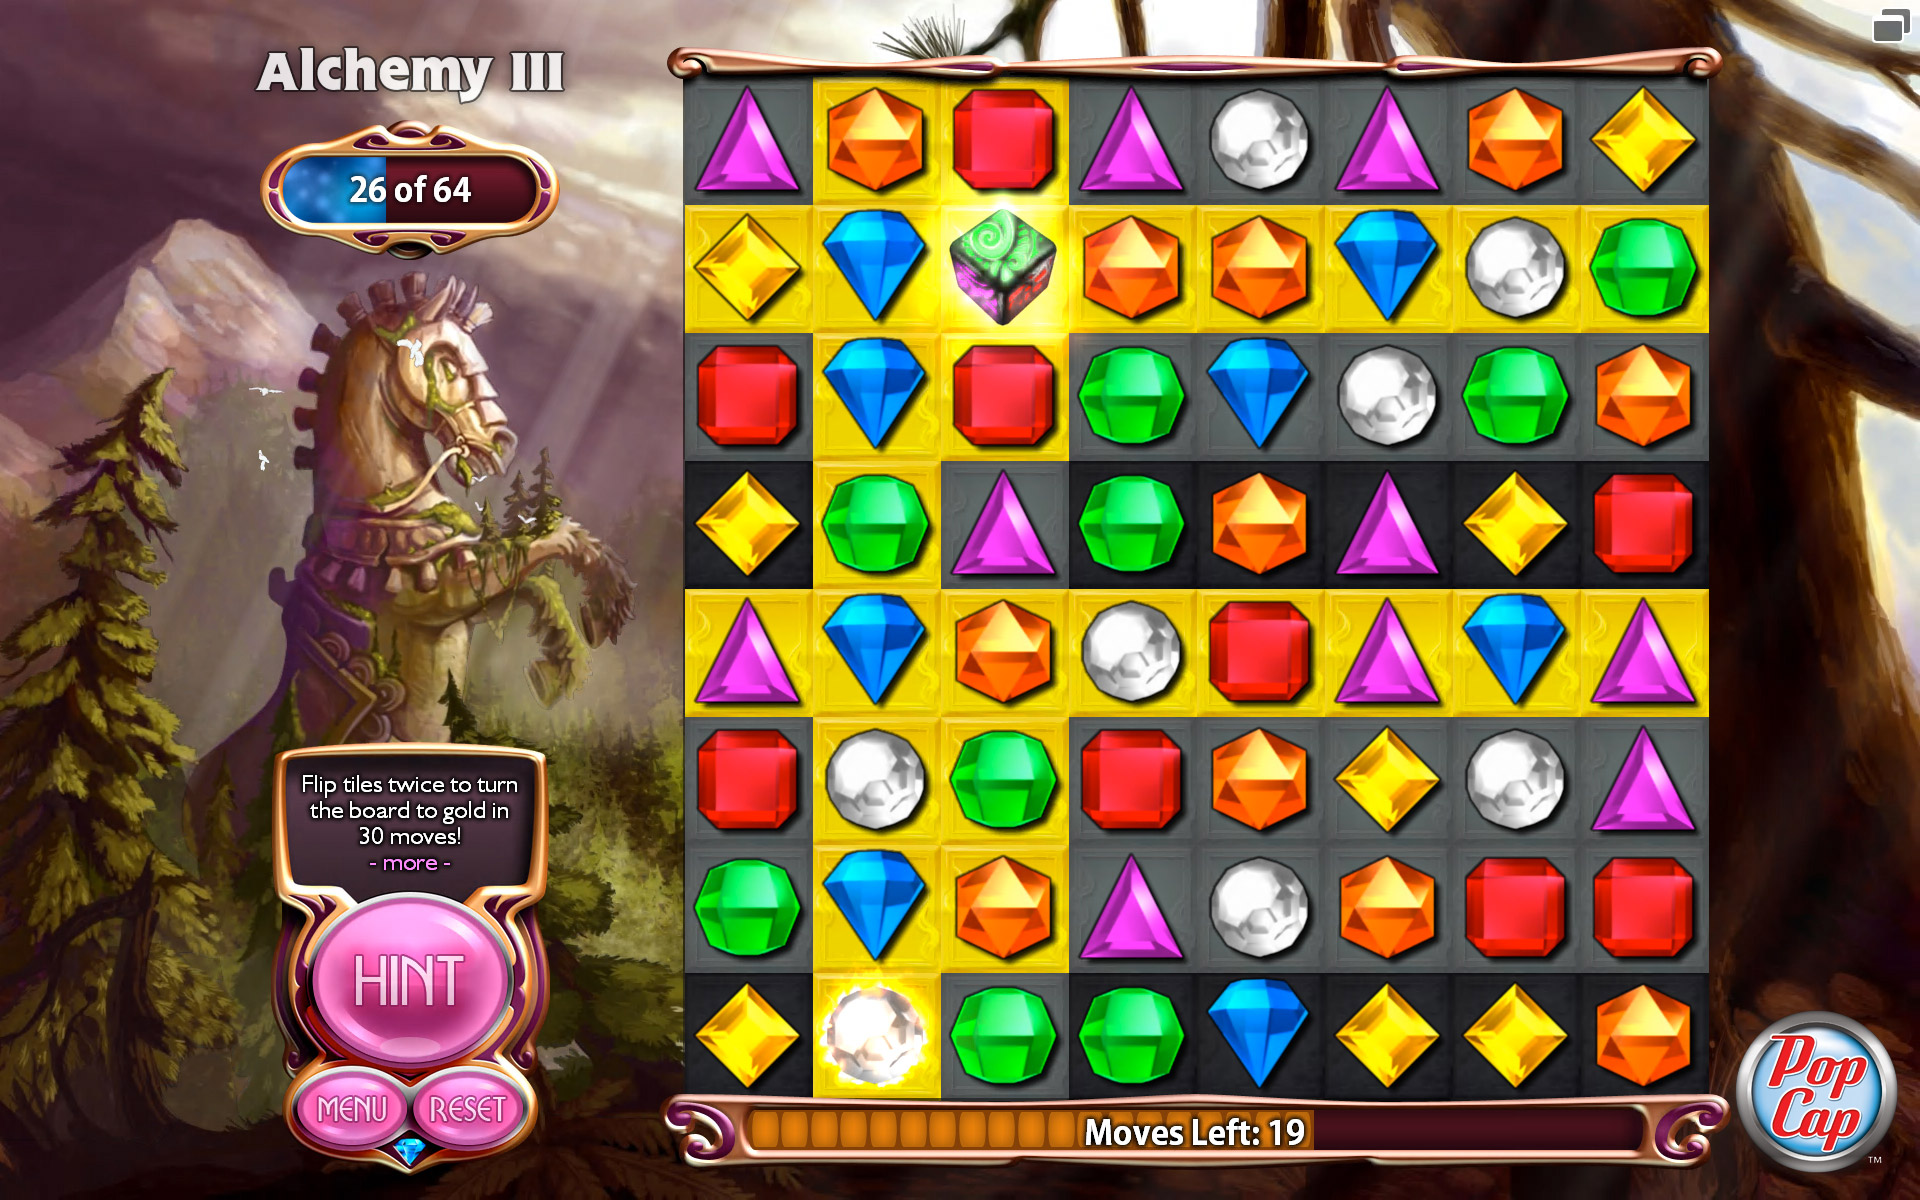 bejeweled 3 descargar gratis para pc completo